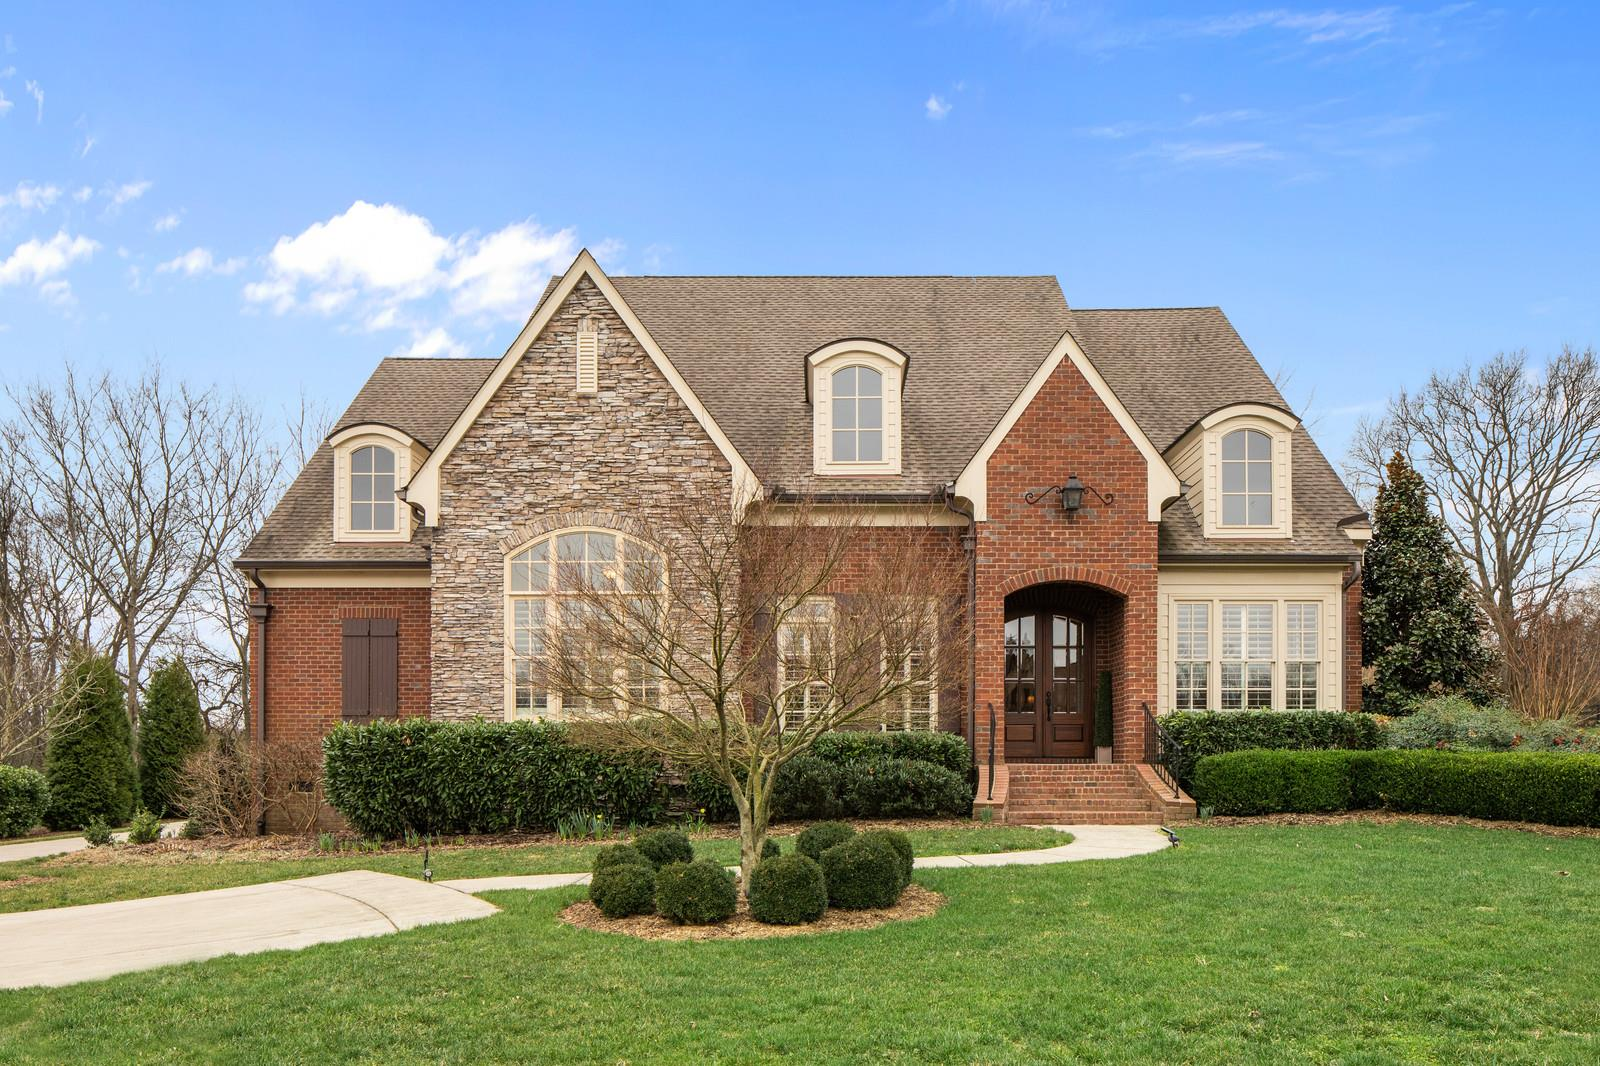 Durham Manor is a neighborhood in Franklin, Tennessee